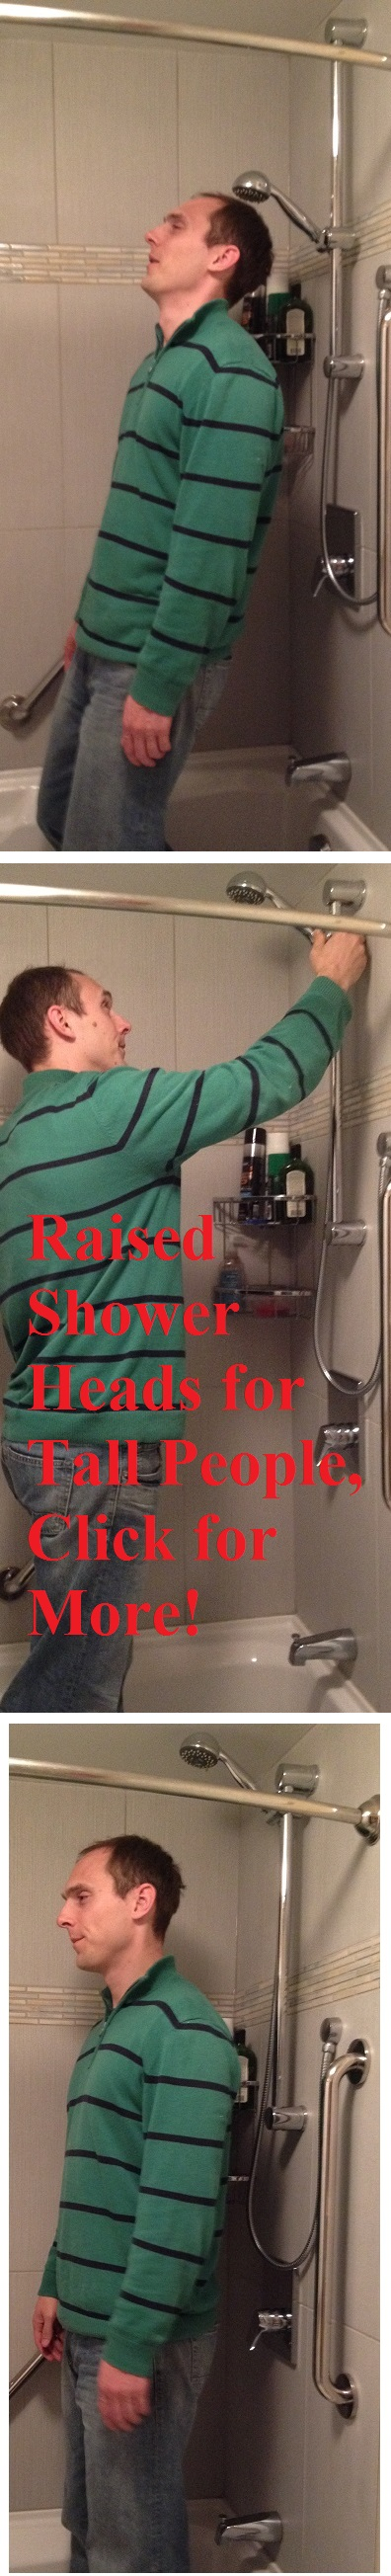 Raised Shower Heads For Tall People. An Adaptation For A Top Tall People  Problem